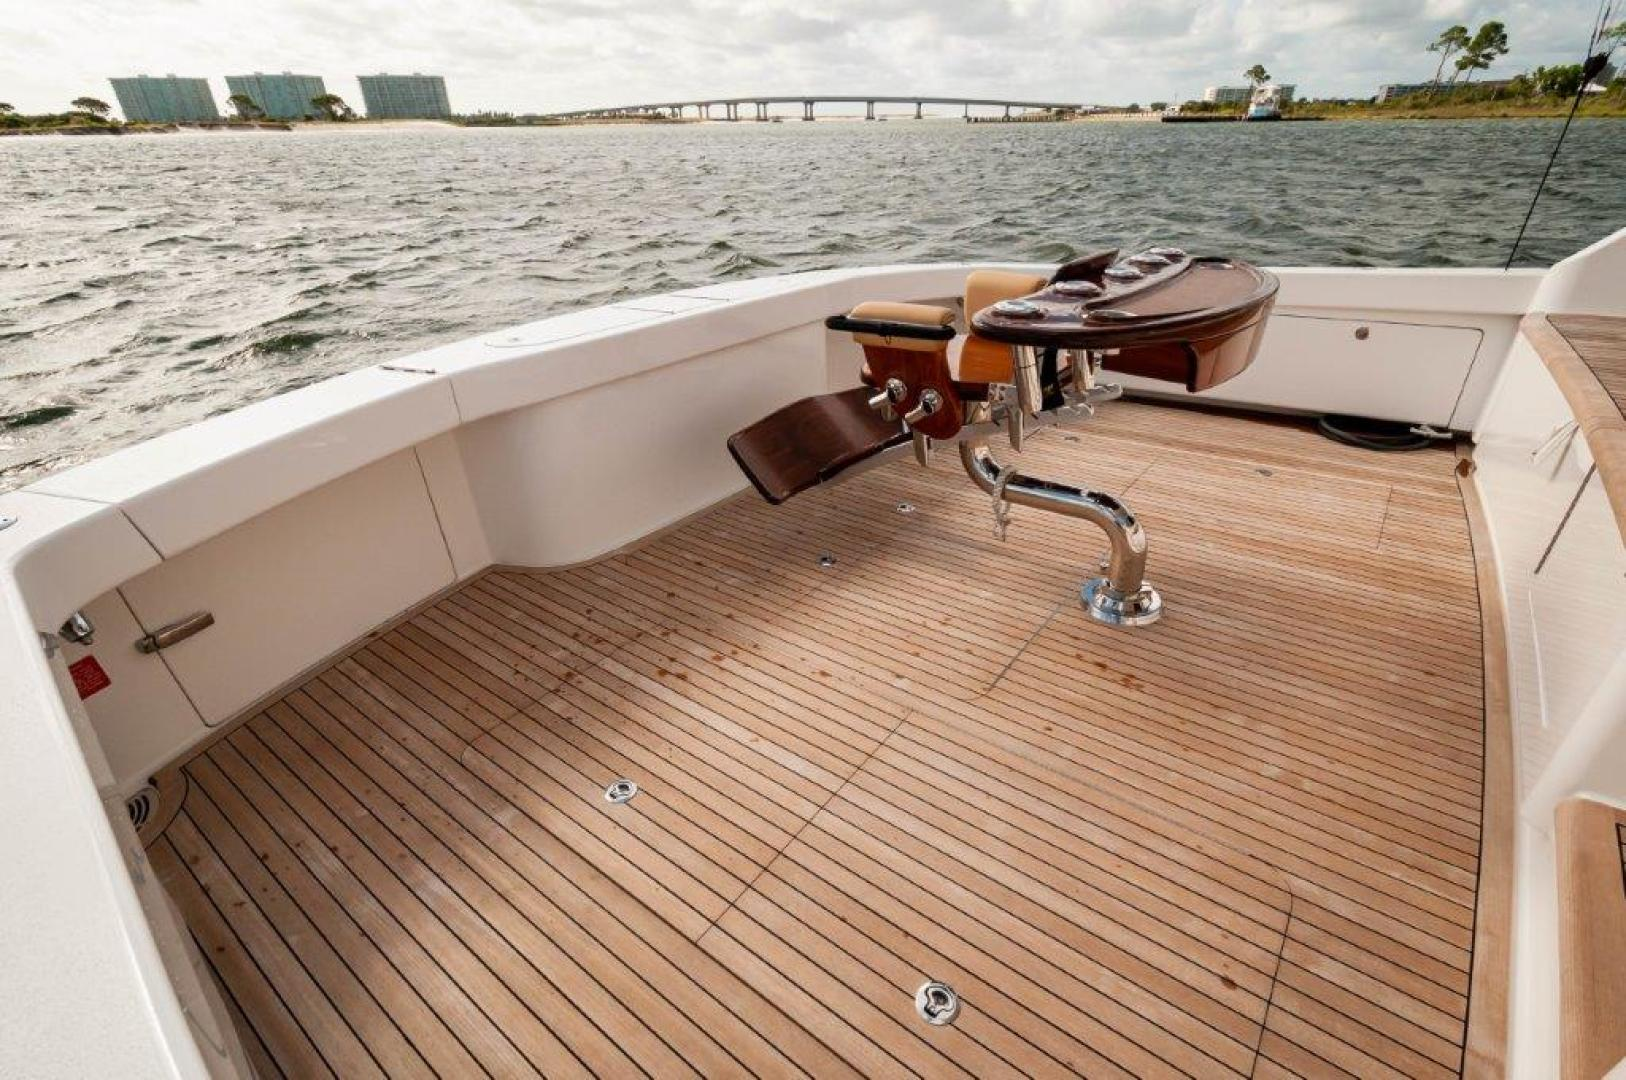 Viking-72 Enclosed Bridge 2017-SHARE E Orange Beach-Alabama-United States-2017 72 EB Viking SHARE-E Cockpit-1233220 | Thumbnail